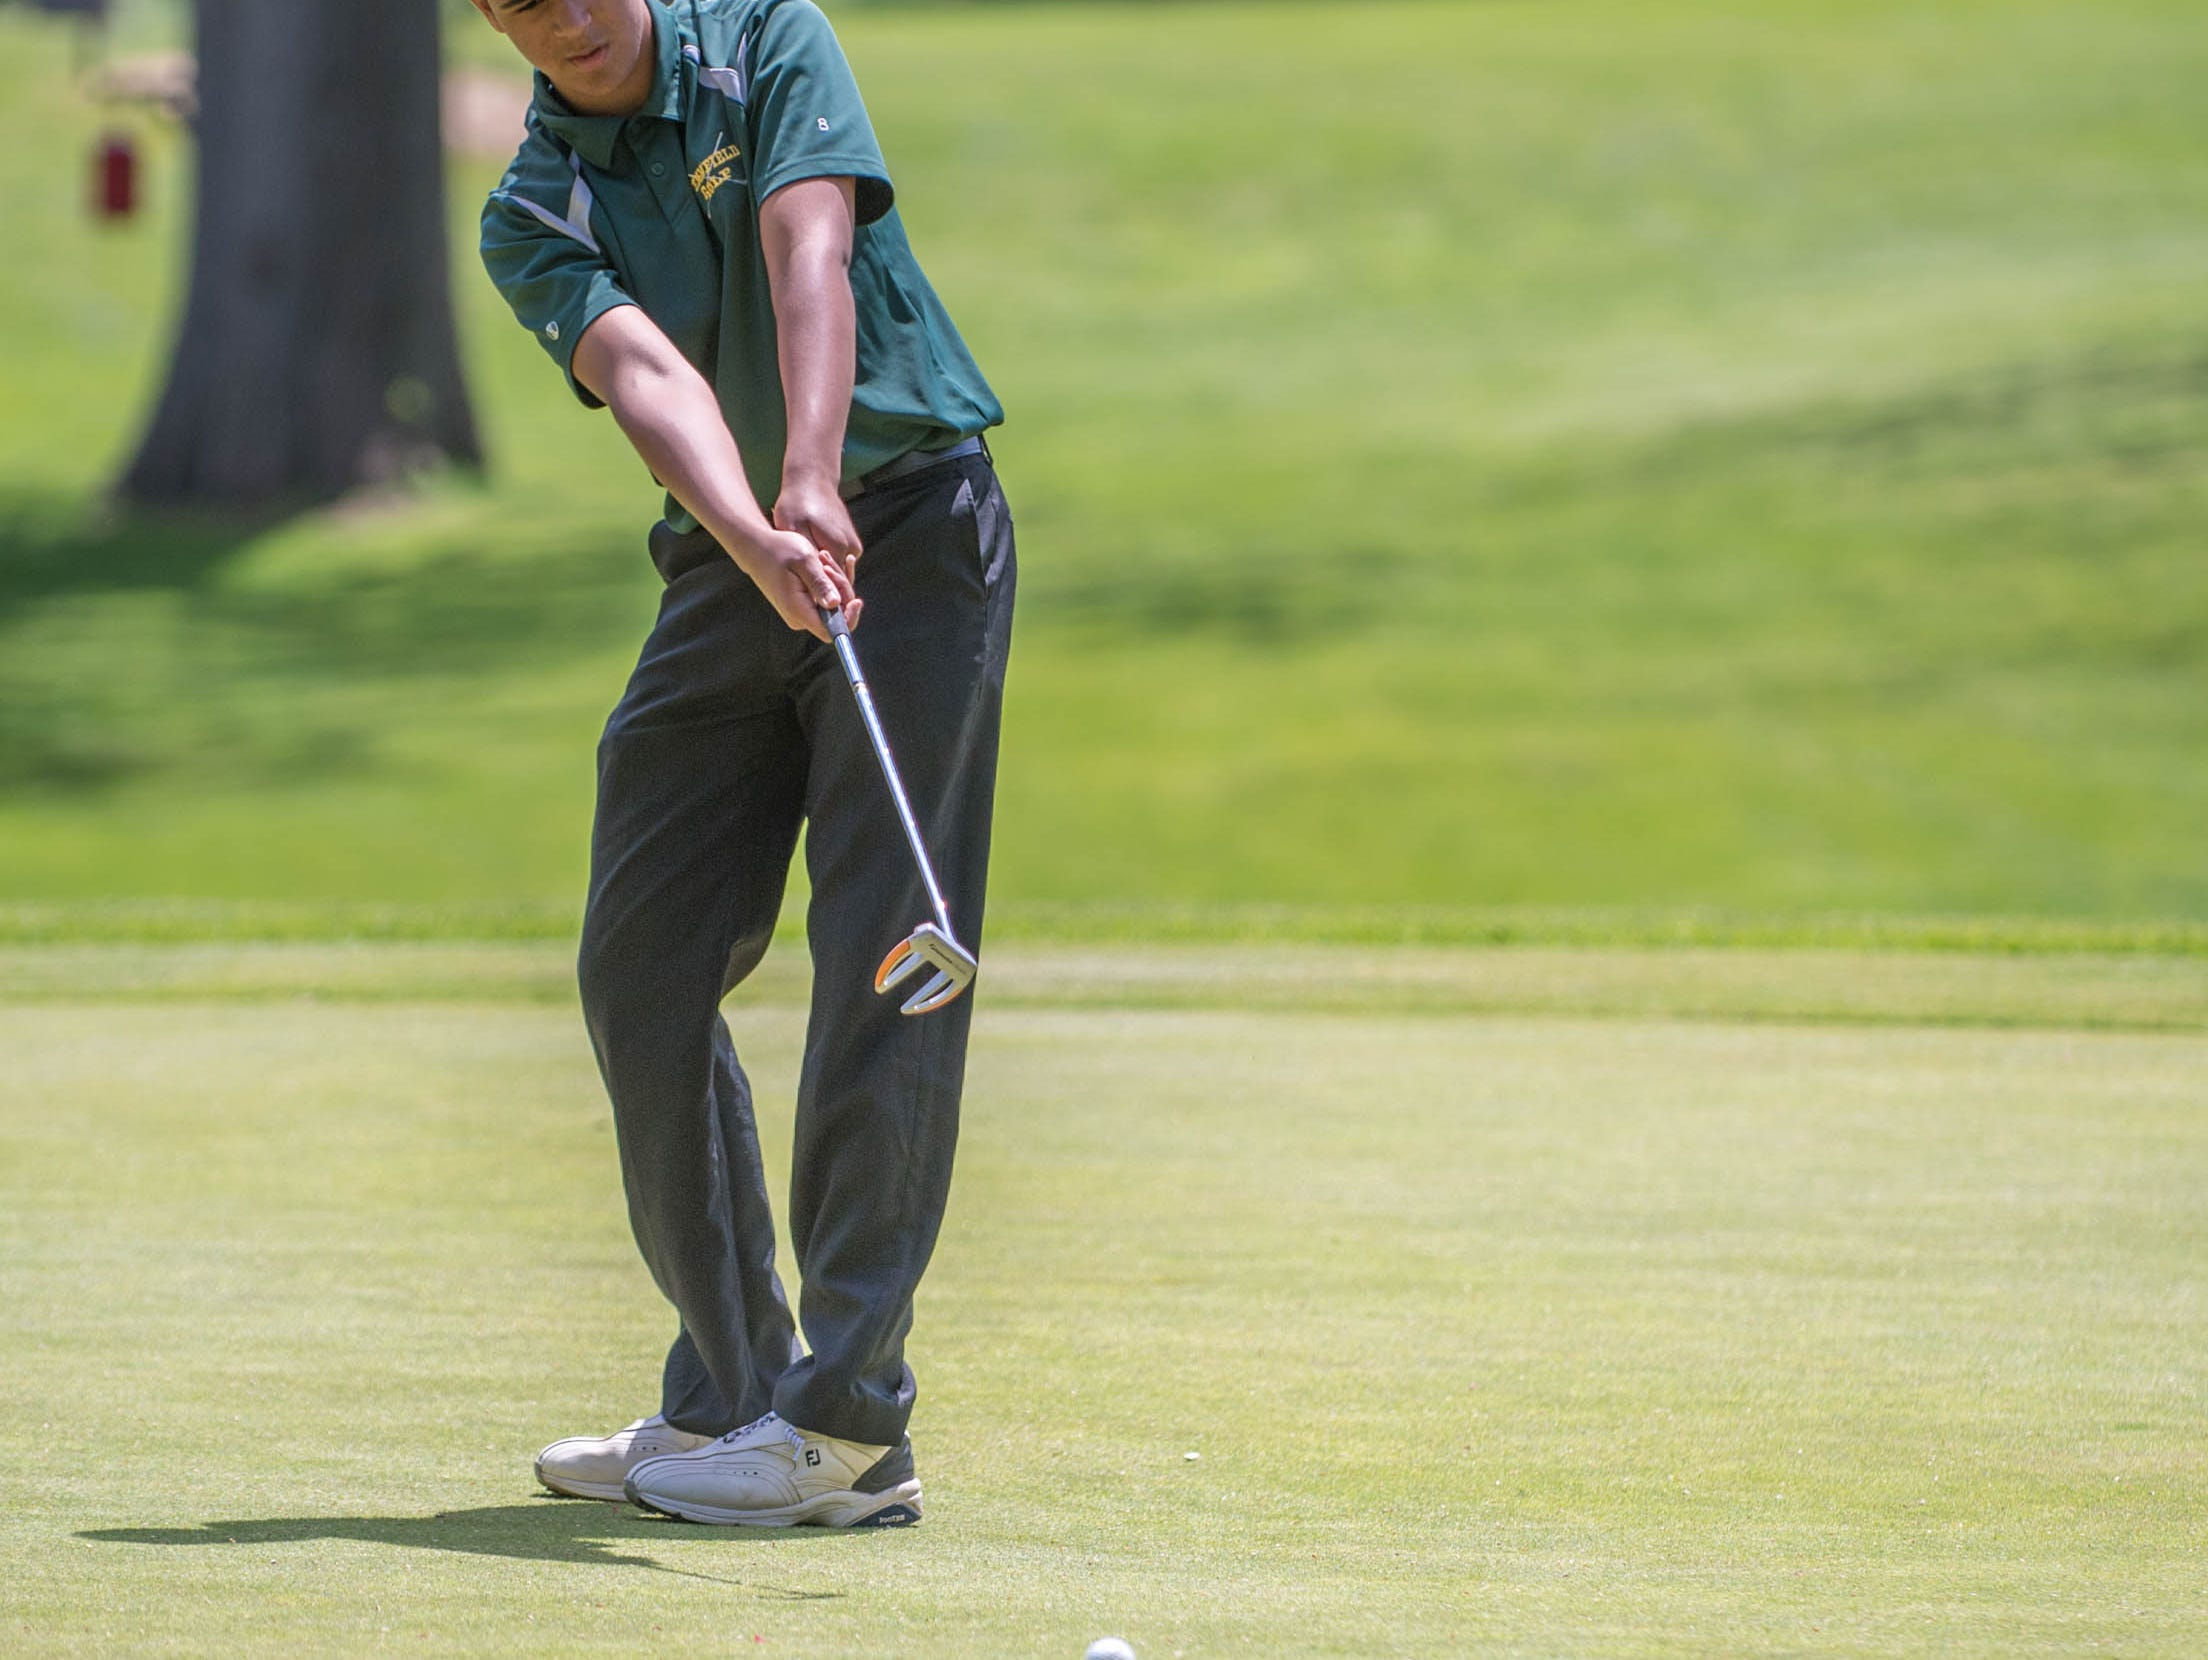 Pennfield sophmore Jaydon Butson hits his putt during All City High School Golf at Riverside Golf Club on Friday.